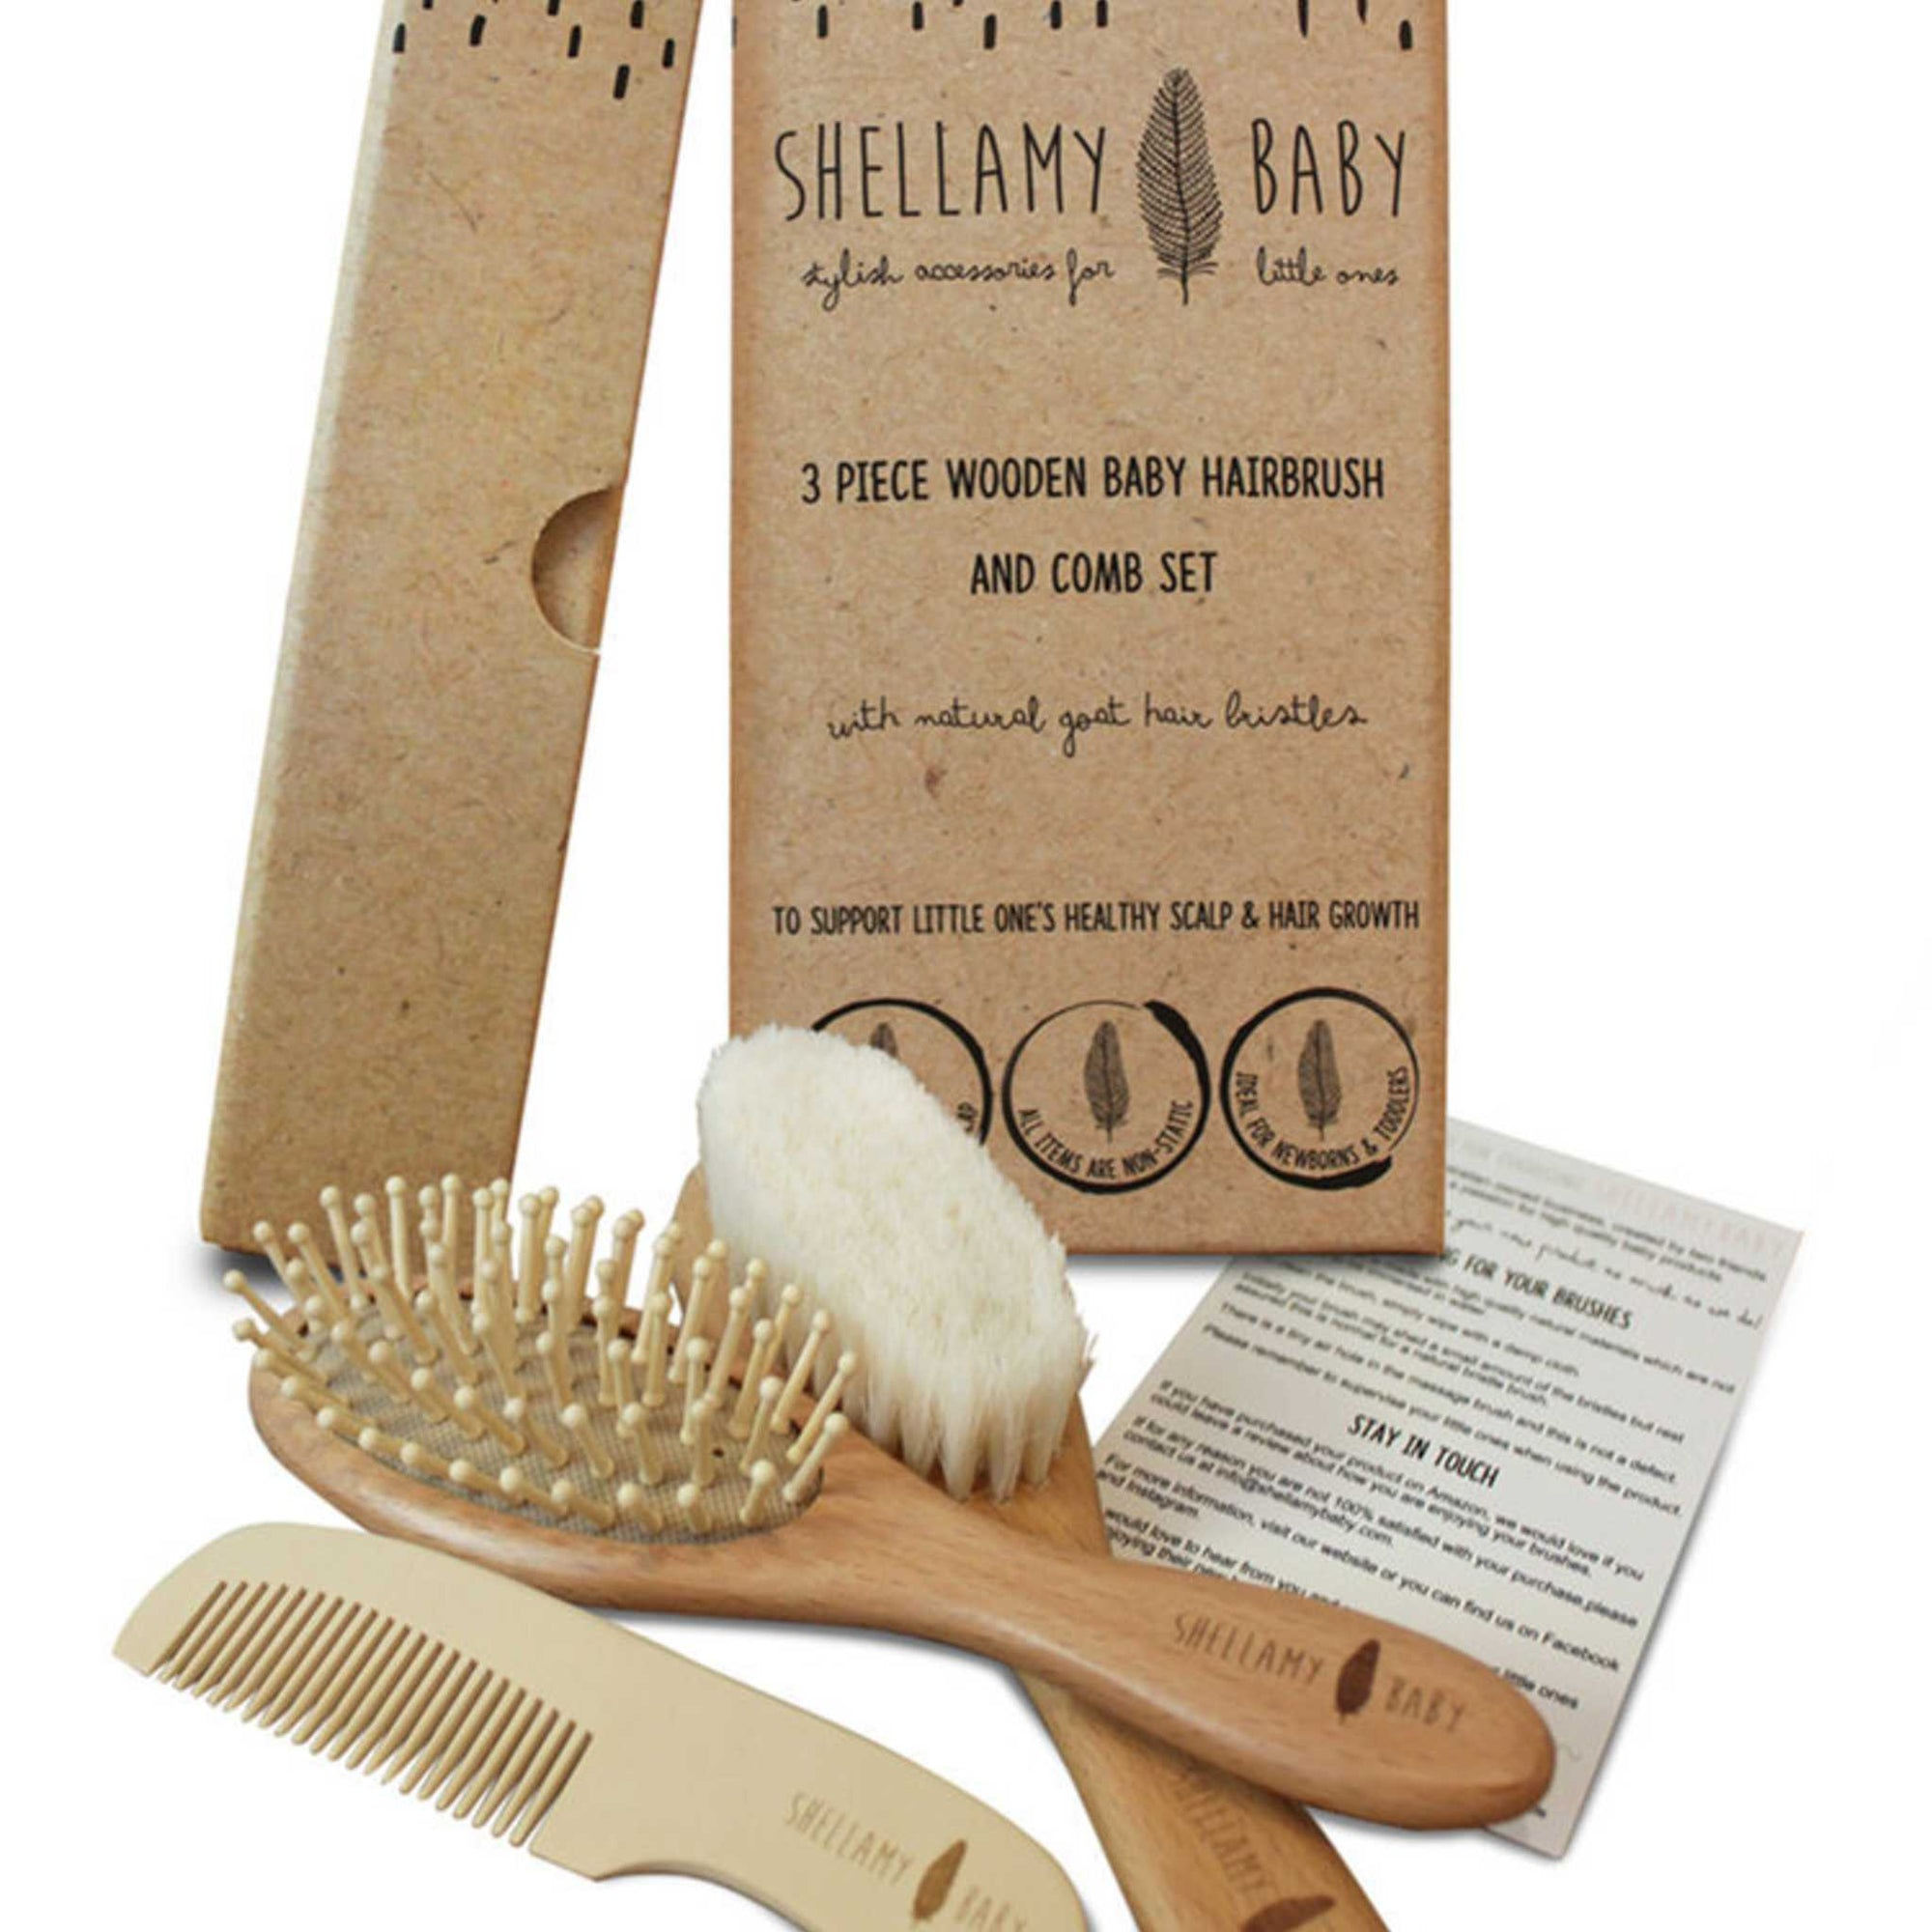 3 Piece Wooden Baby Hairbrush and Comb Set-Accessories-Shellamy Baby-Little Soldiers